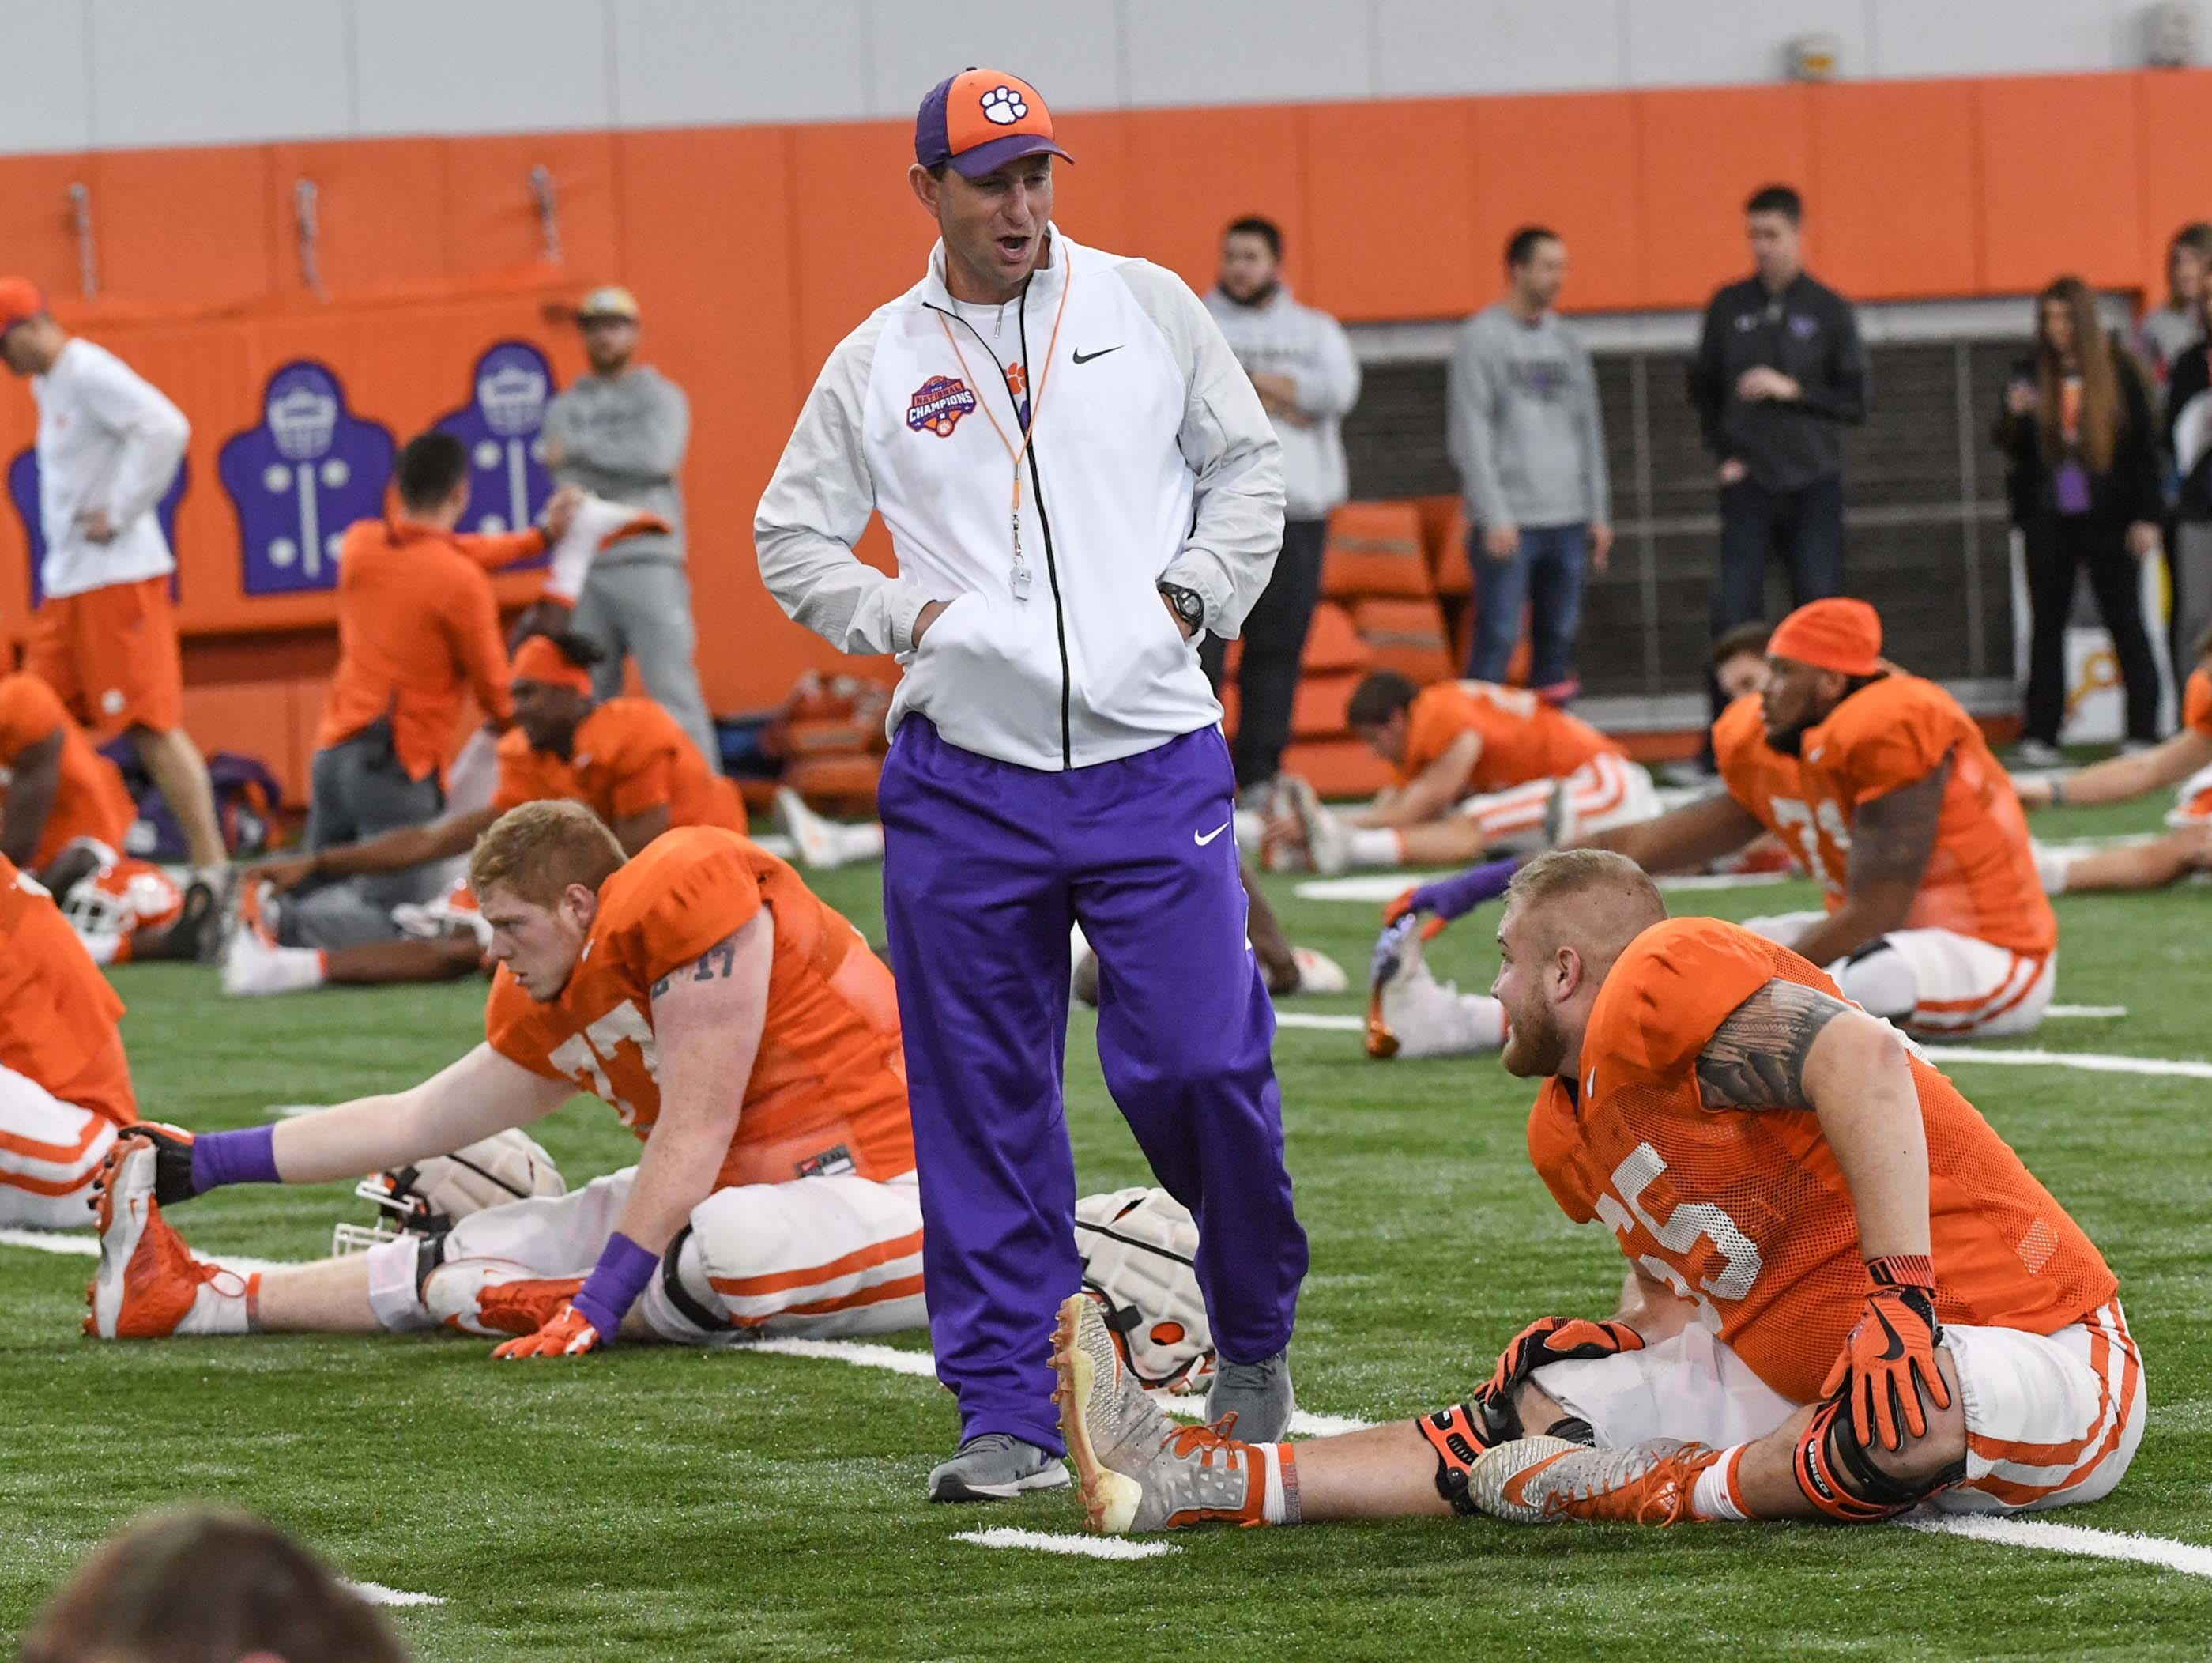 Clemson Head Coach Dabo Swinney walks by offensive lineman Matt Bockhorst (65) and others stretching during practice at the Poe Indoor Facility in Clemson Monday.